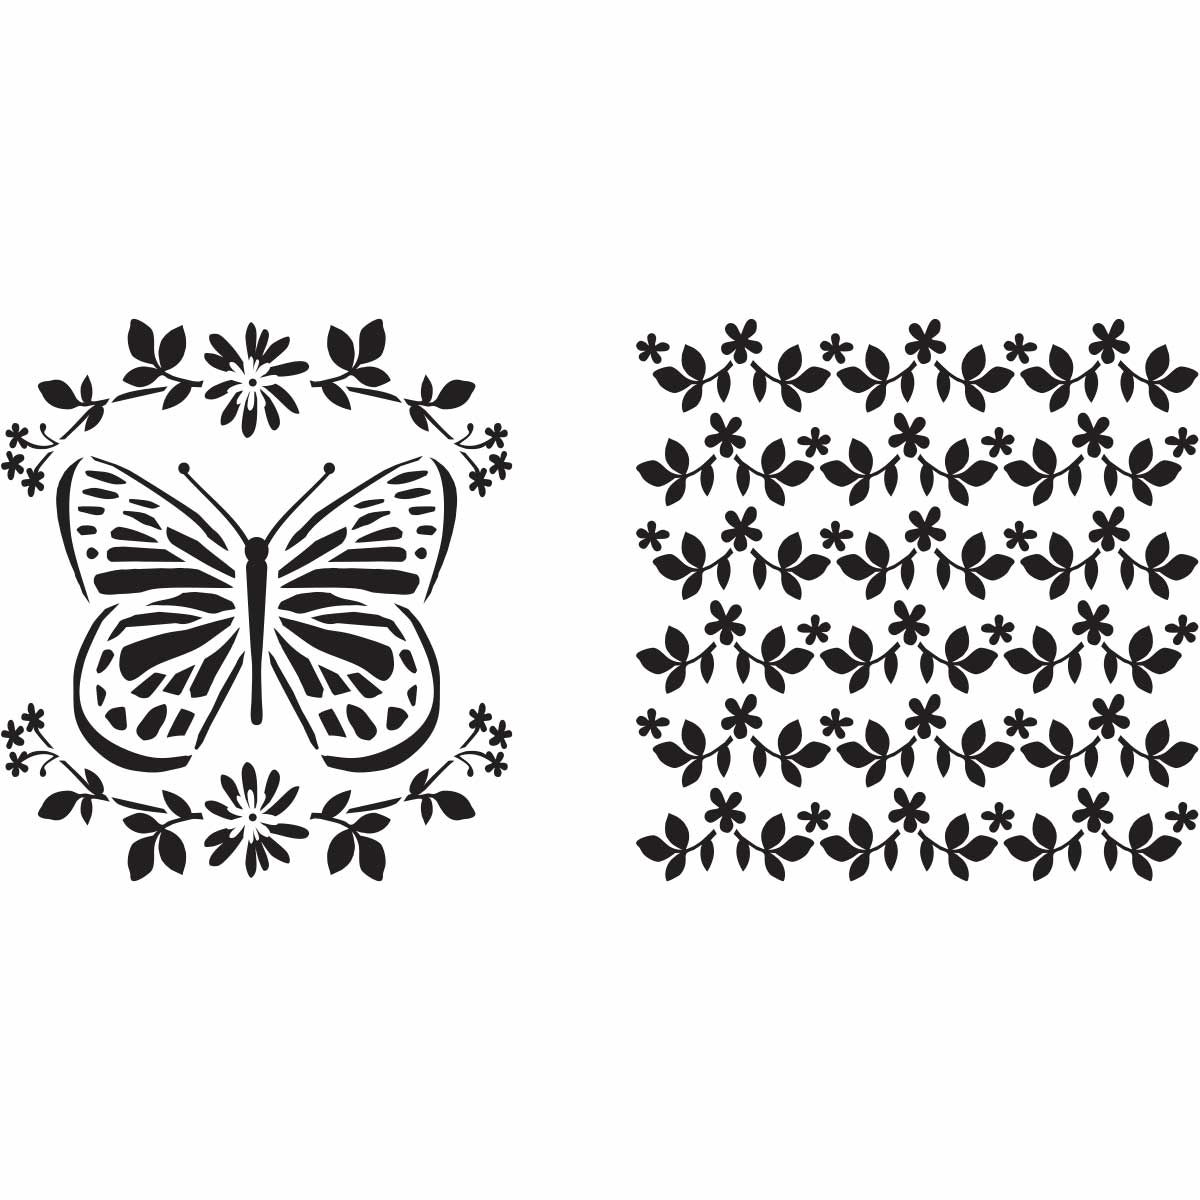 Fabric Creations™ Adhesive Stencils - Butterfly, 6